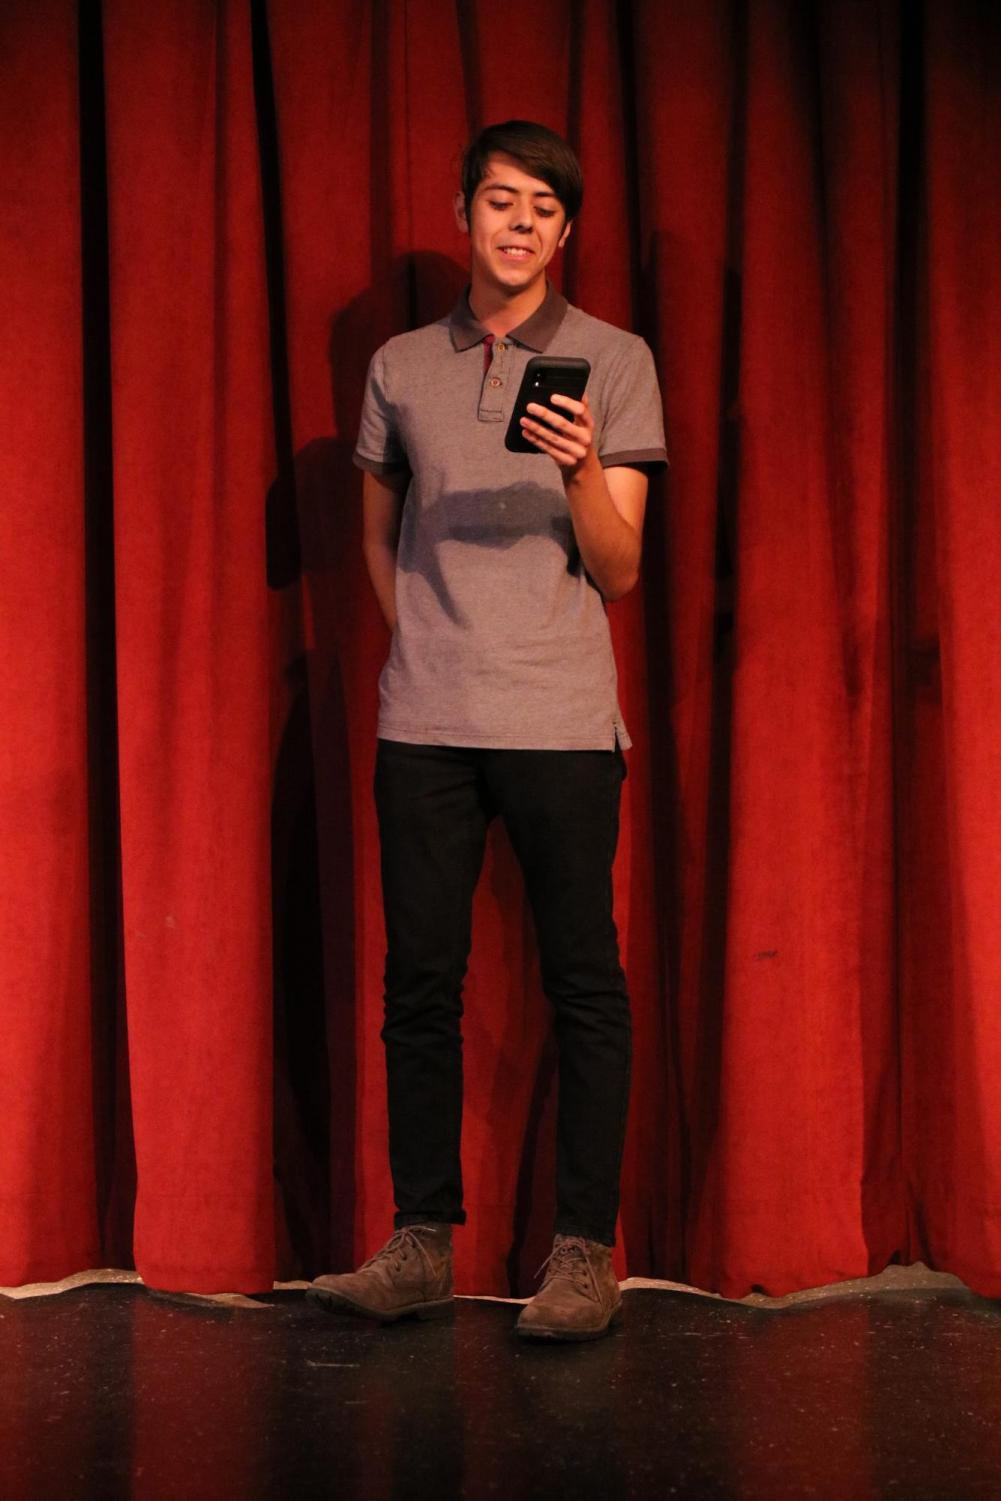 Reciting+two+poems%2C+Edward+Haro%2C+12%2C+performed+at+the+Writing+Center%E2%80%99s+Poetry+Slam+on+Feb.+28+in+the+Downey+High+Theater.+%E2%80%9CI+tried+making+any+dialogue+within+it+%28the+poem%29+different%2C+I+did+this+by+changing+the+accents+and+stuttering+similar+to+how+the+boy+in+the+poem+did%2C%E2%80%9D+Haro+said.+%E2%80%9CI+chose+these+poem+because+I+just+wanted+people+to+know+how+great+they+were.%E2%80%9D